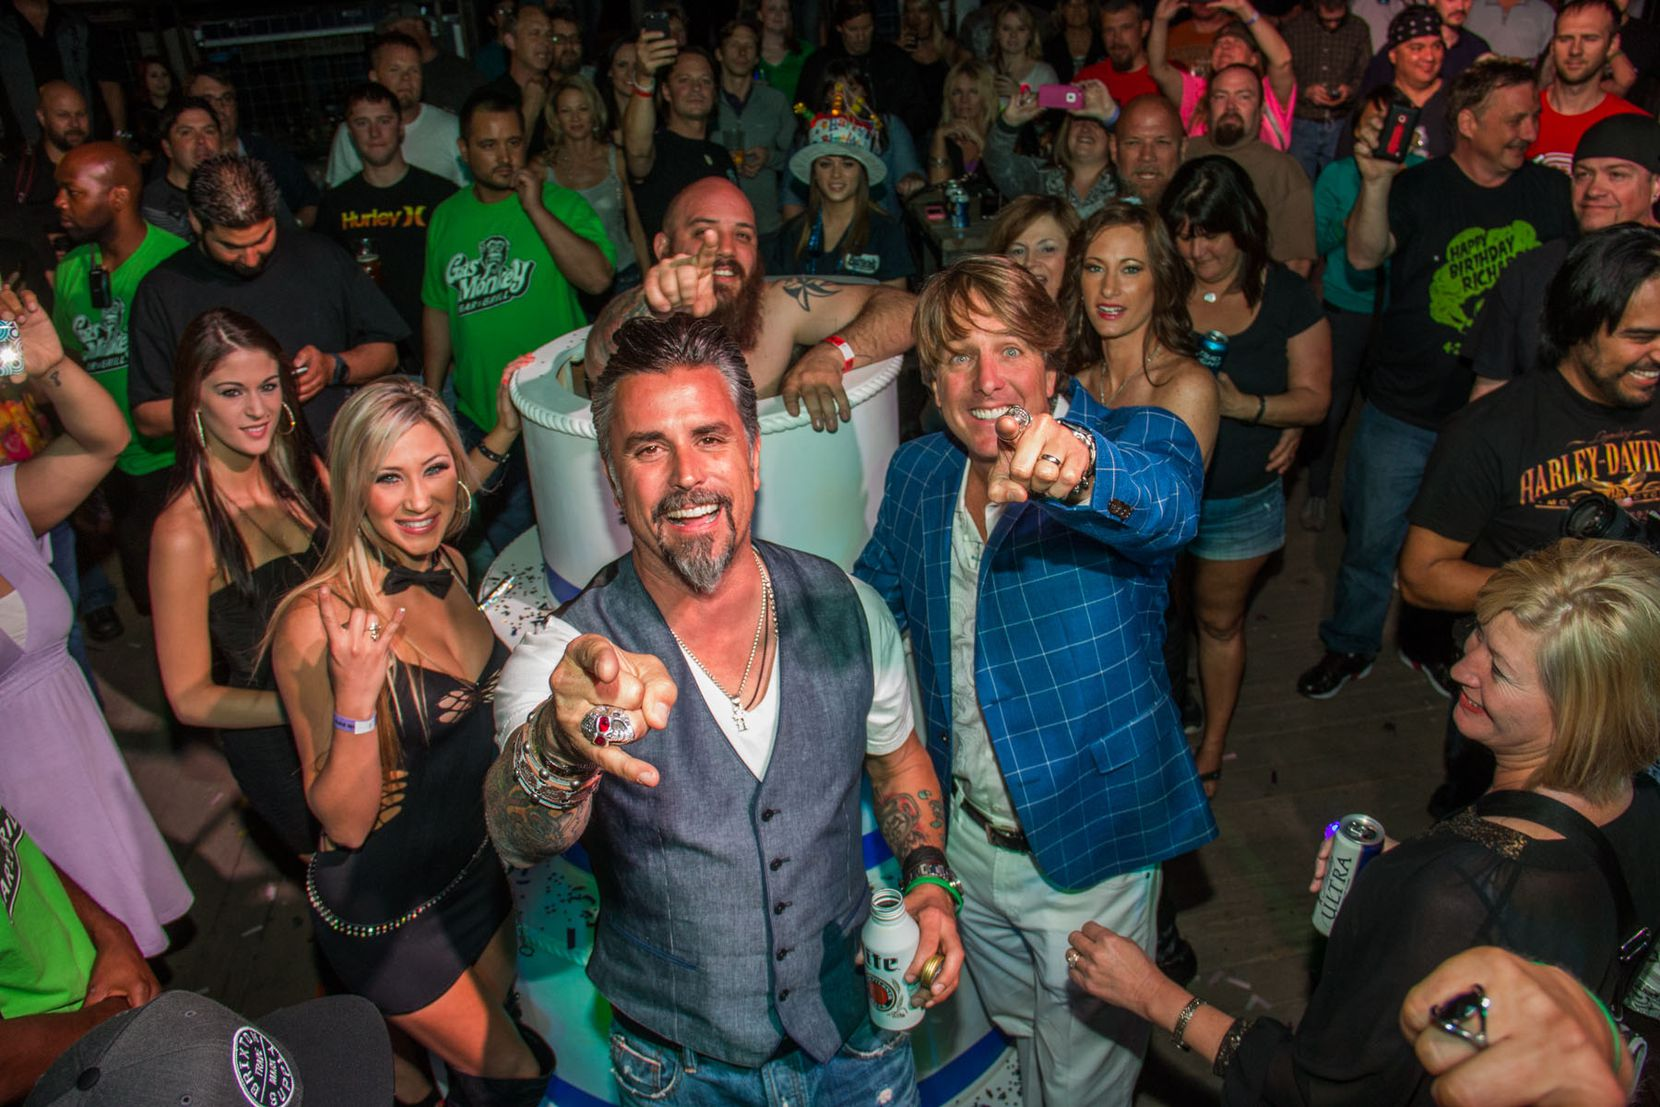 Richard Rawlings celebrated with his fans and friends at the Gas Monkey Bar N' Grill for his birthday party blowout on April 24, 2014, which raised funds for the Gas Monkey Foundation.